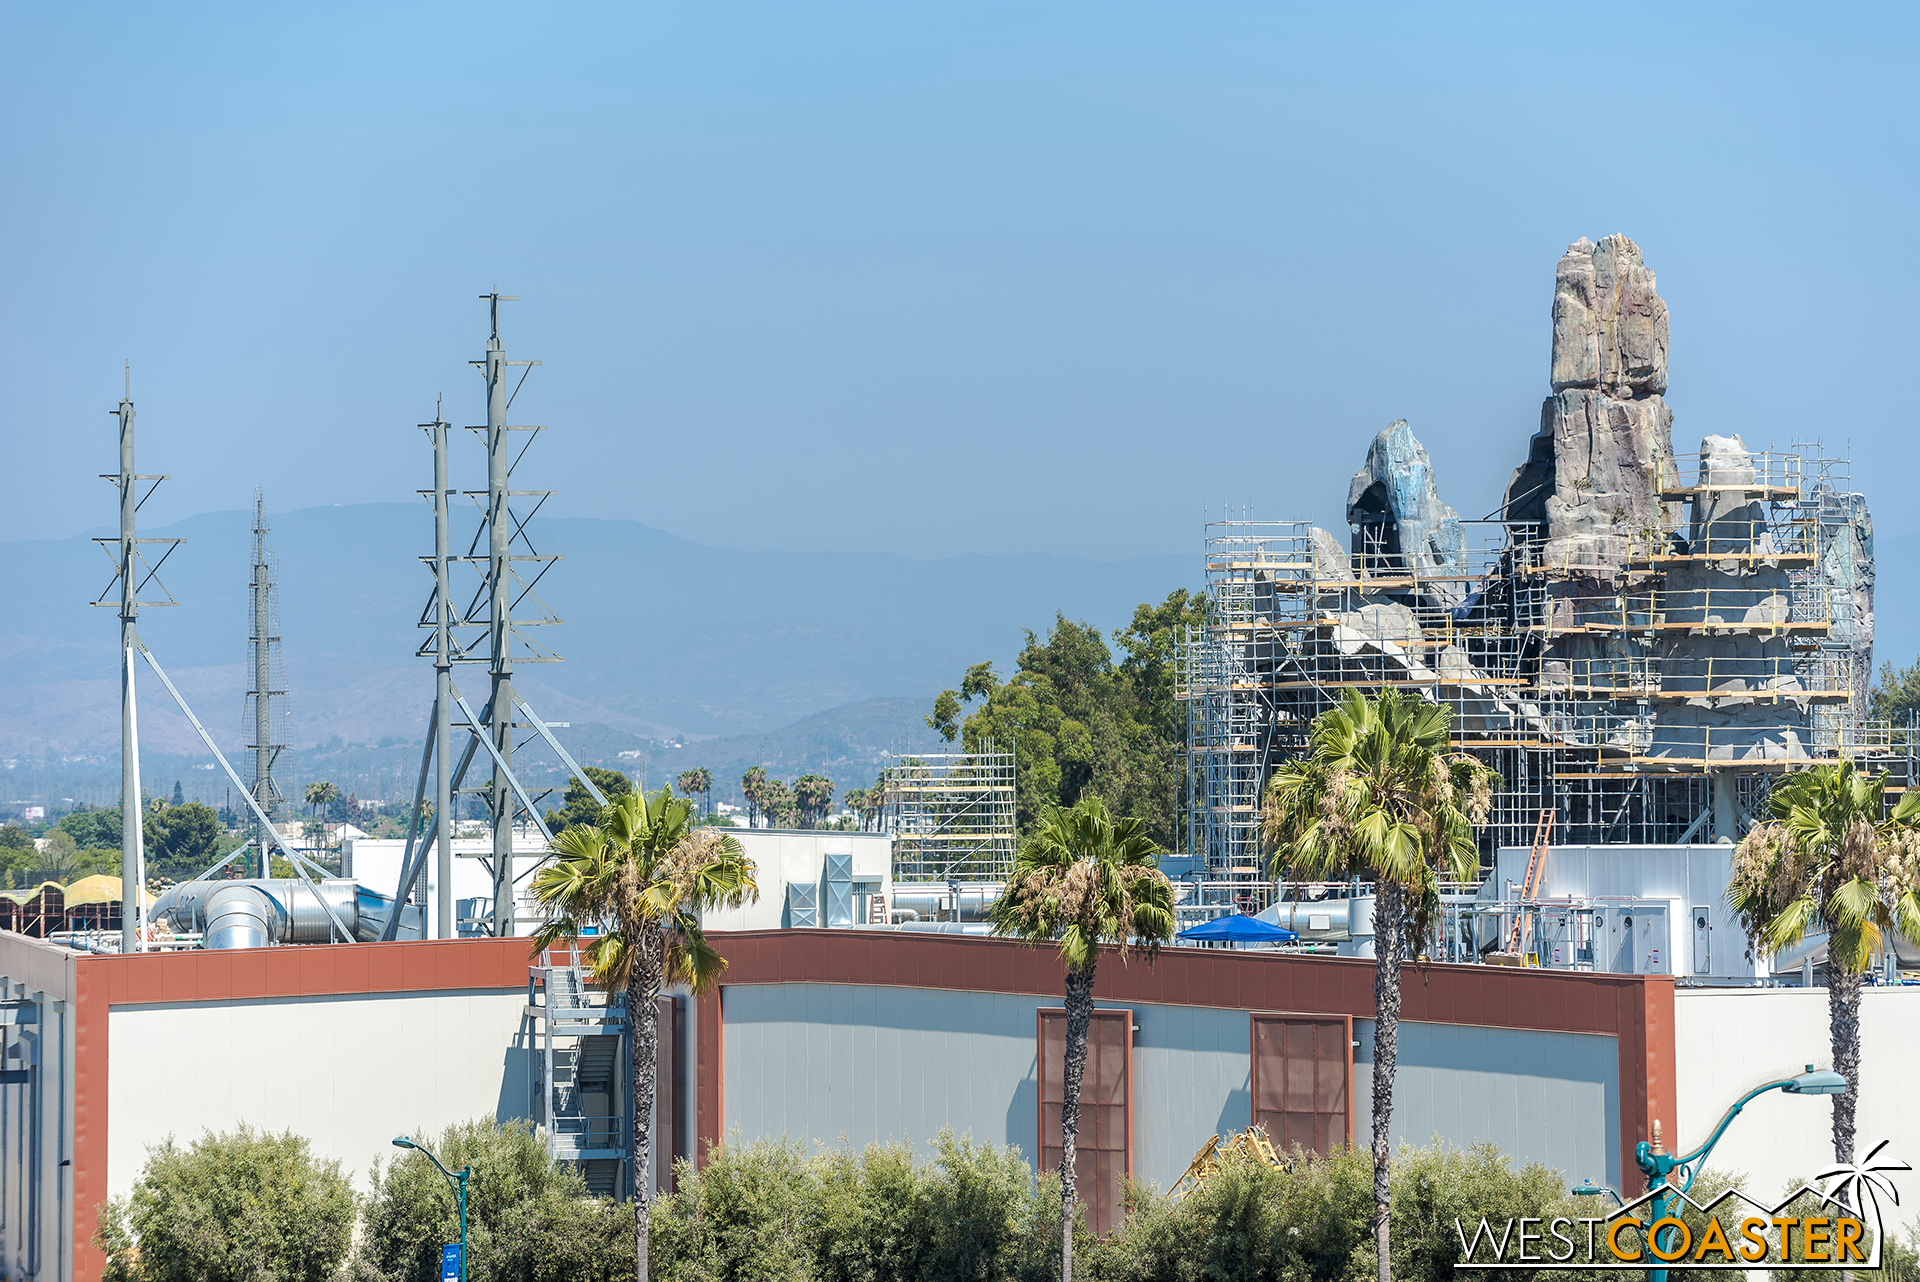 Some new steel columns and outriggers have appeared over the Millennium Falcon ride building.